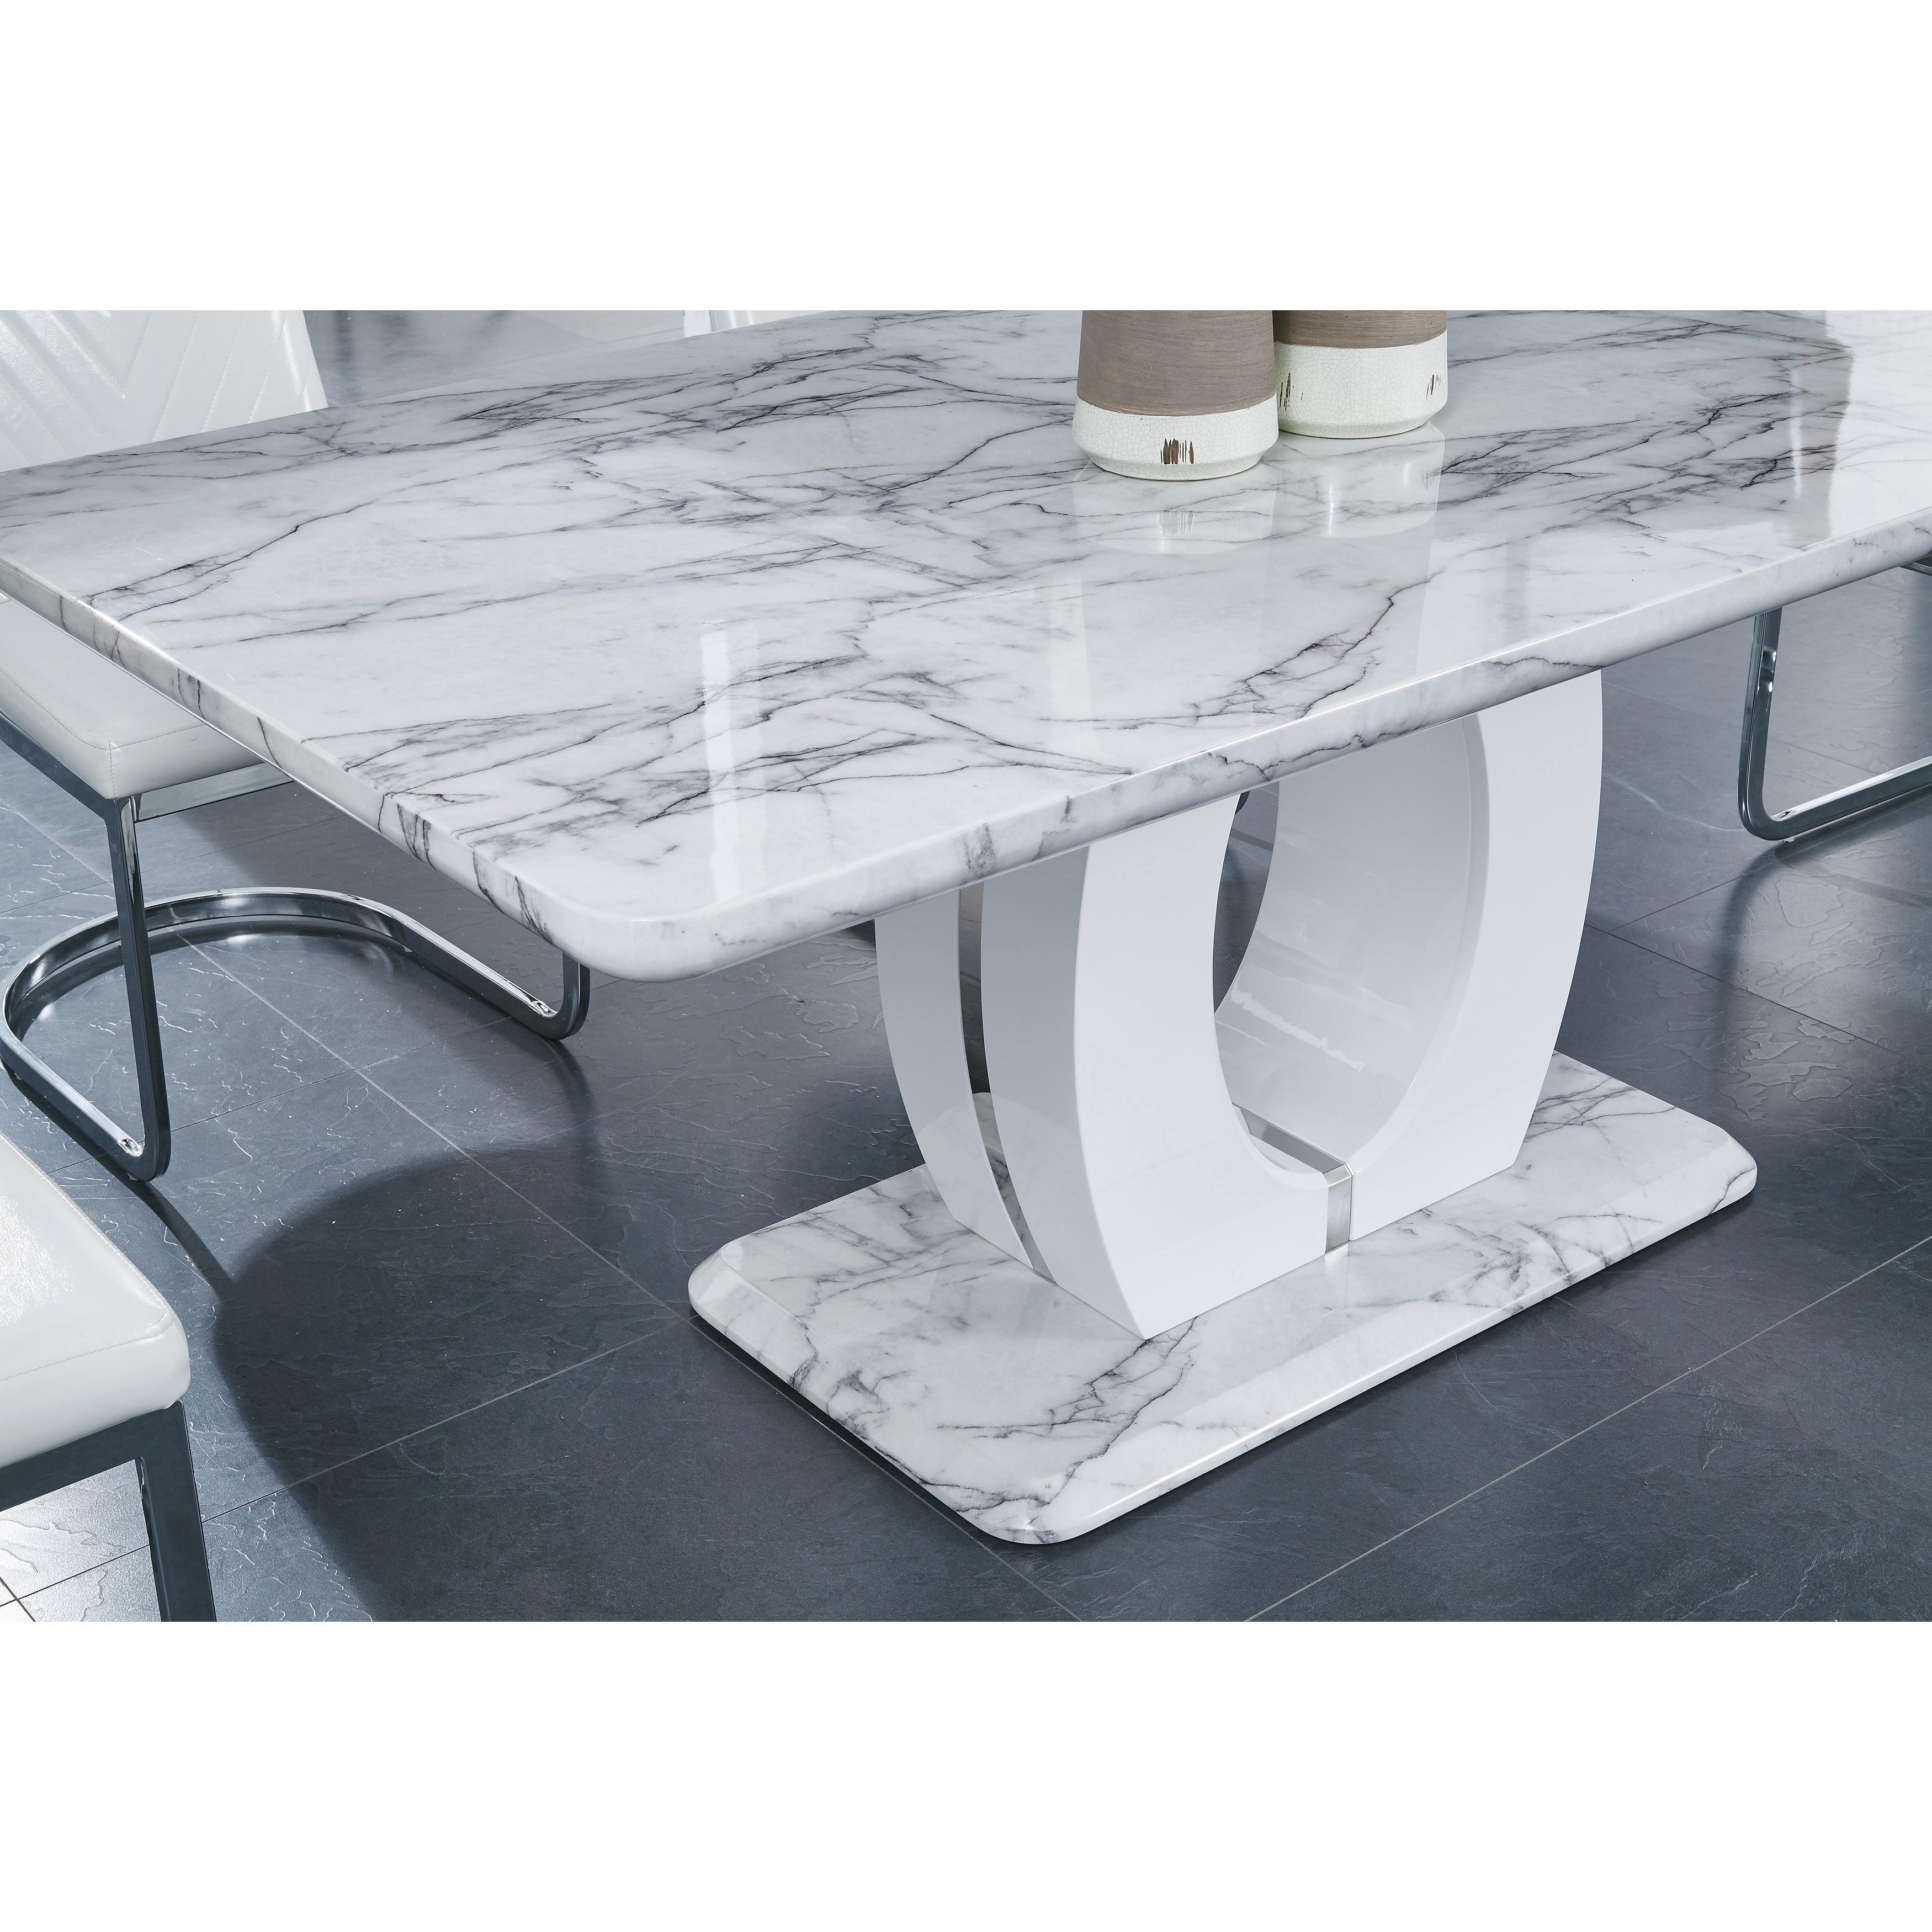 casablanca marble table coffee velvet teal safavieh gray and rug img elm topped blue couch december west pedestal